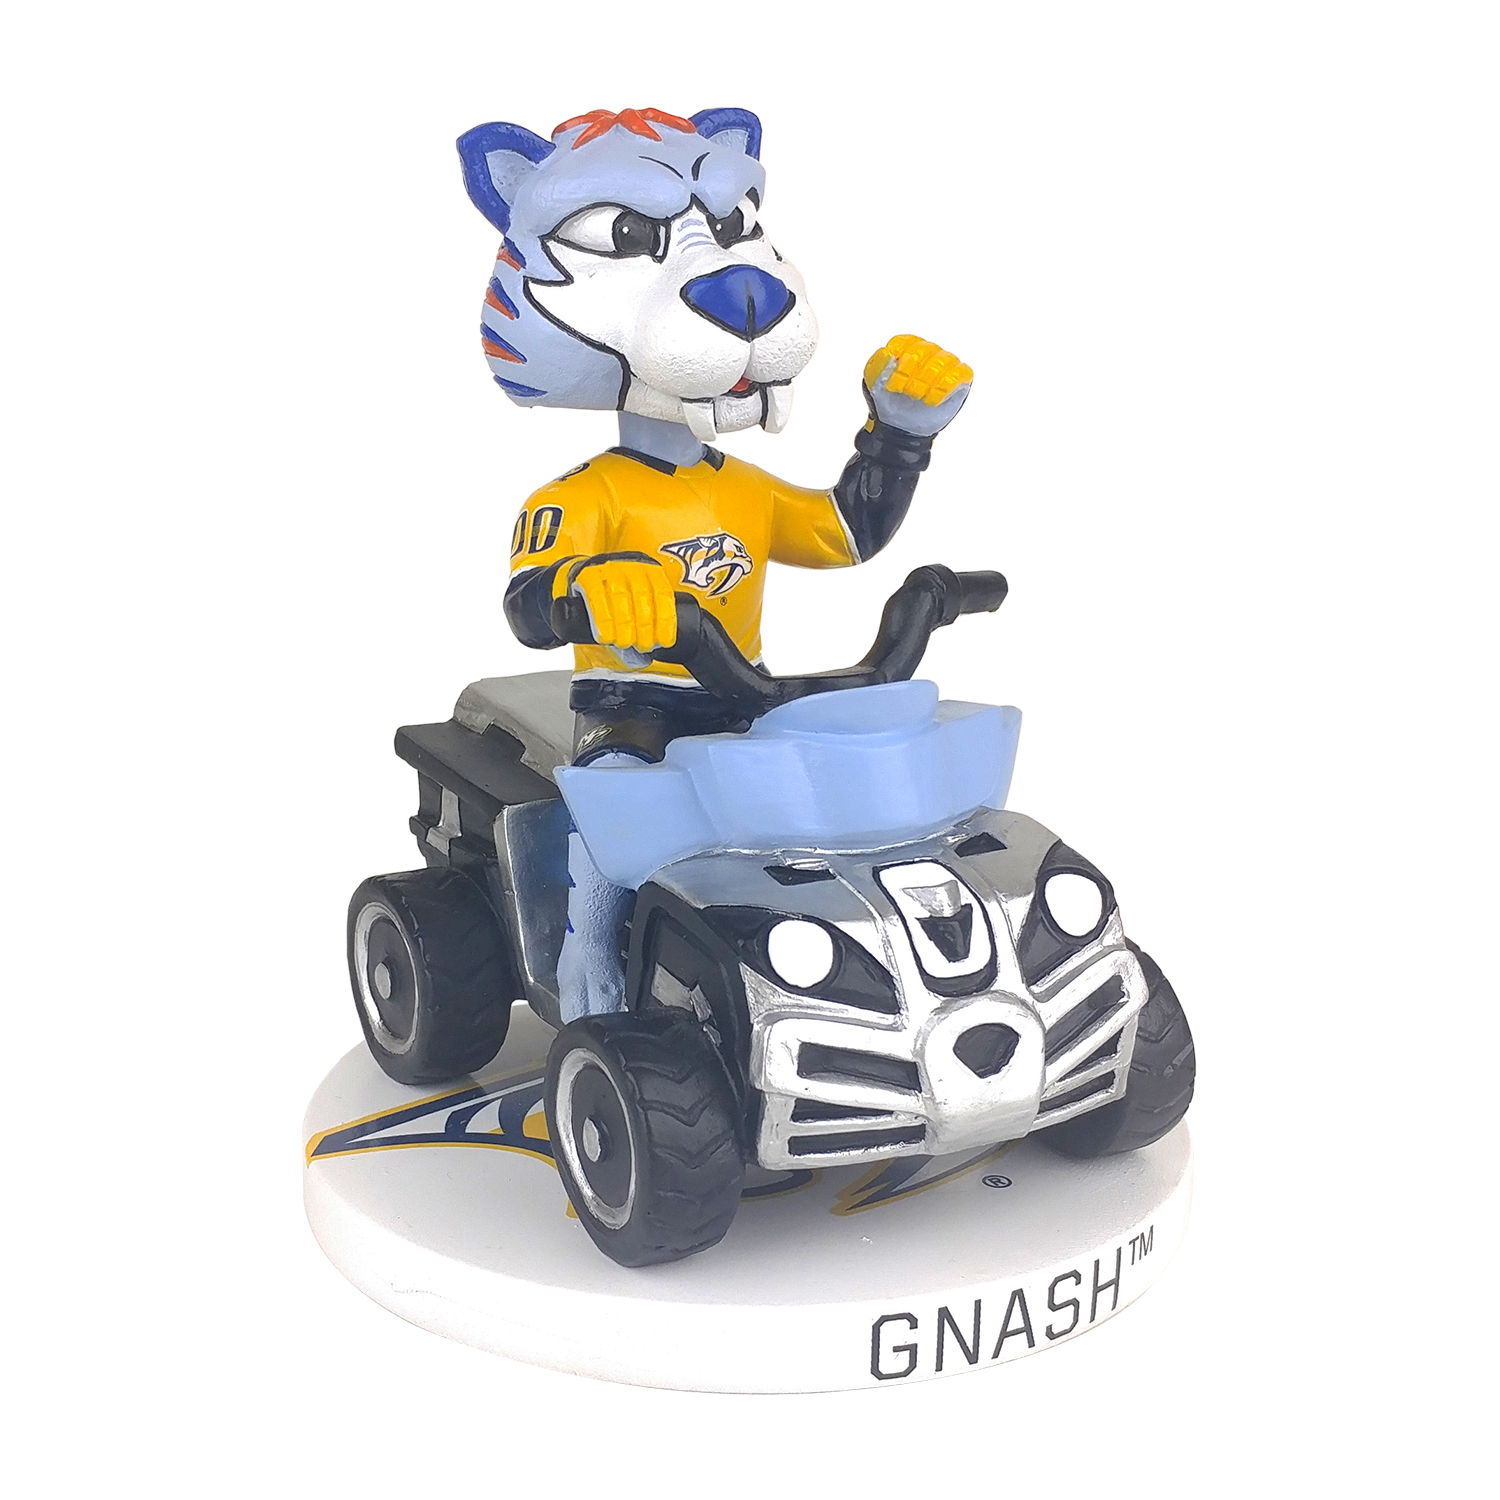 GNASH: The Predators Mascot Bobblehead